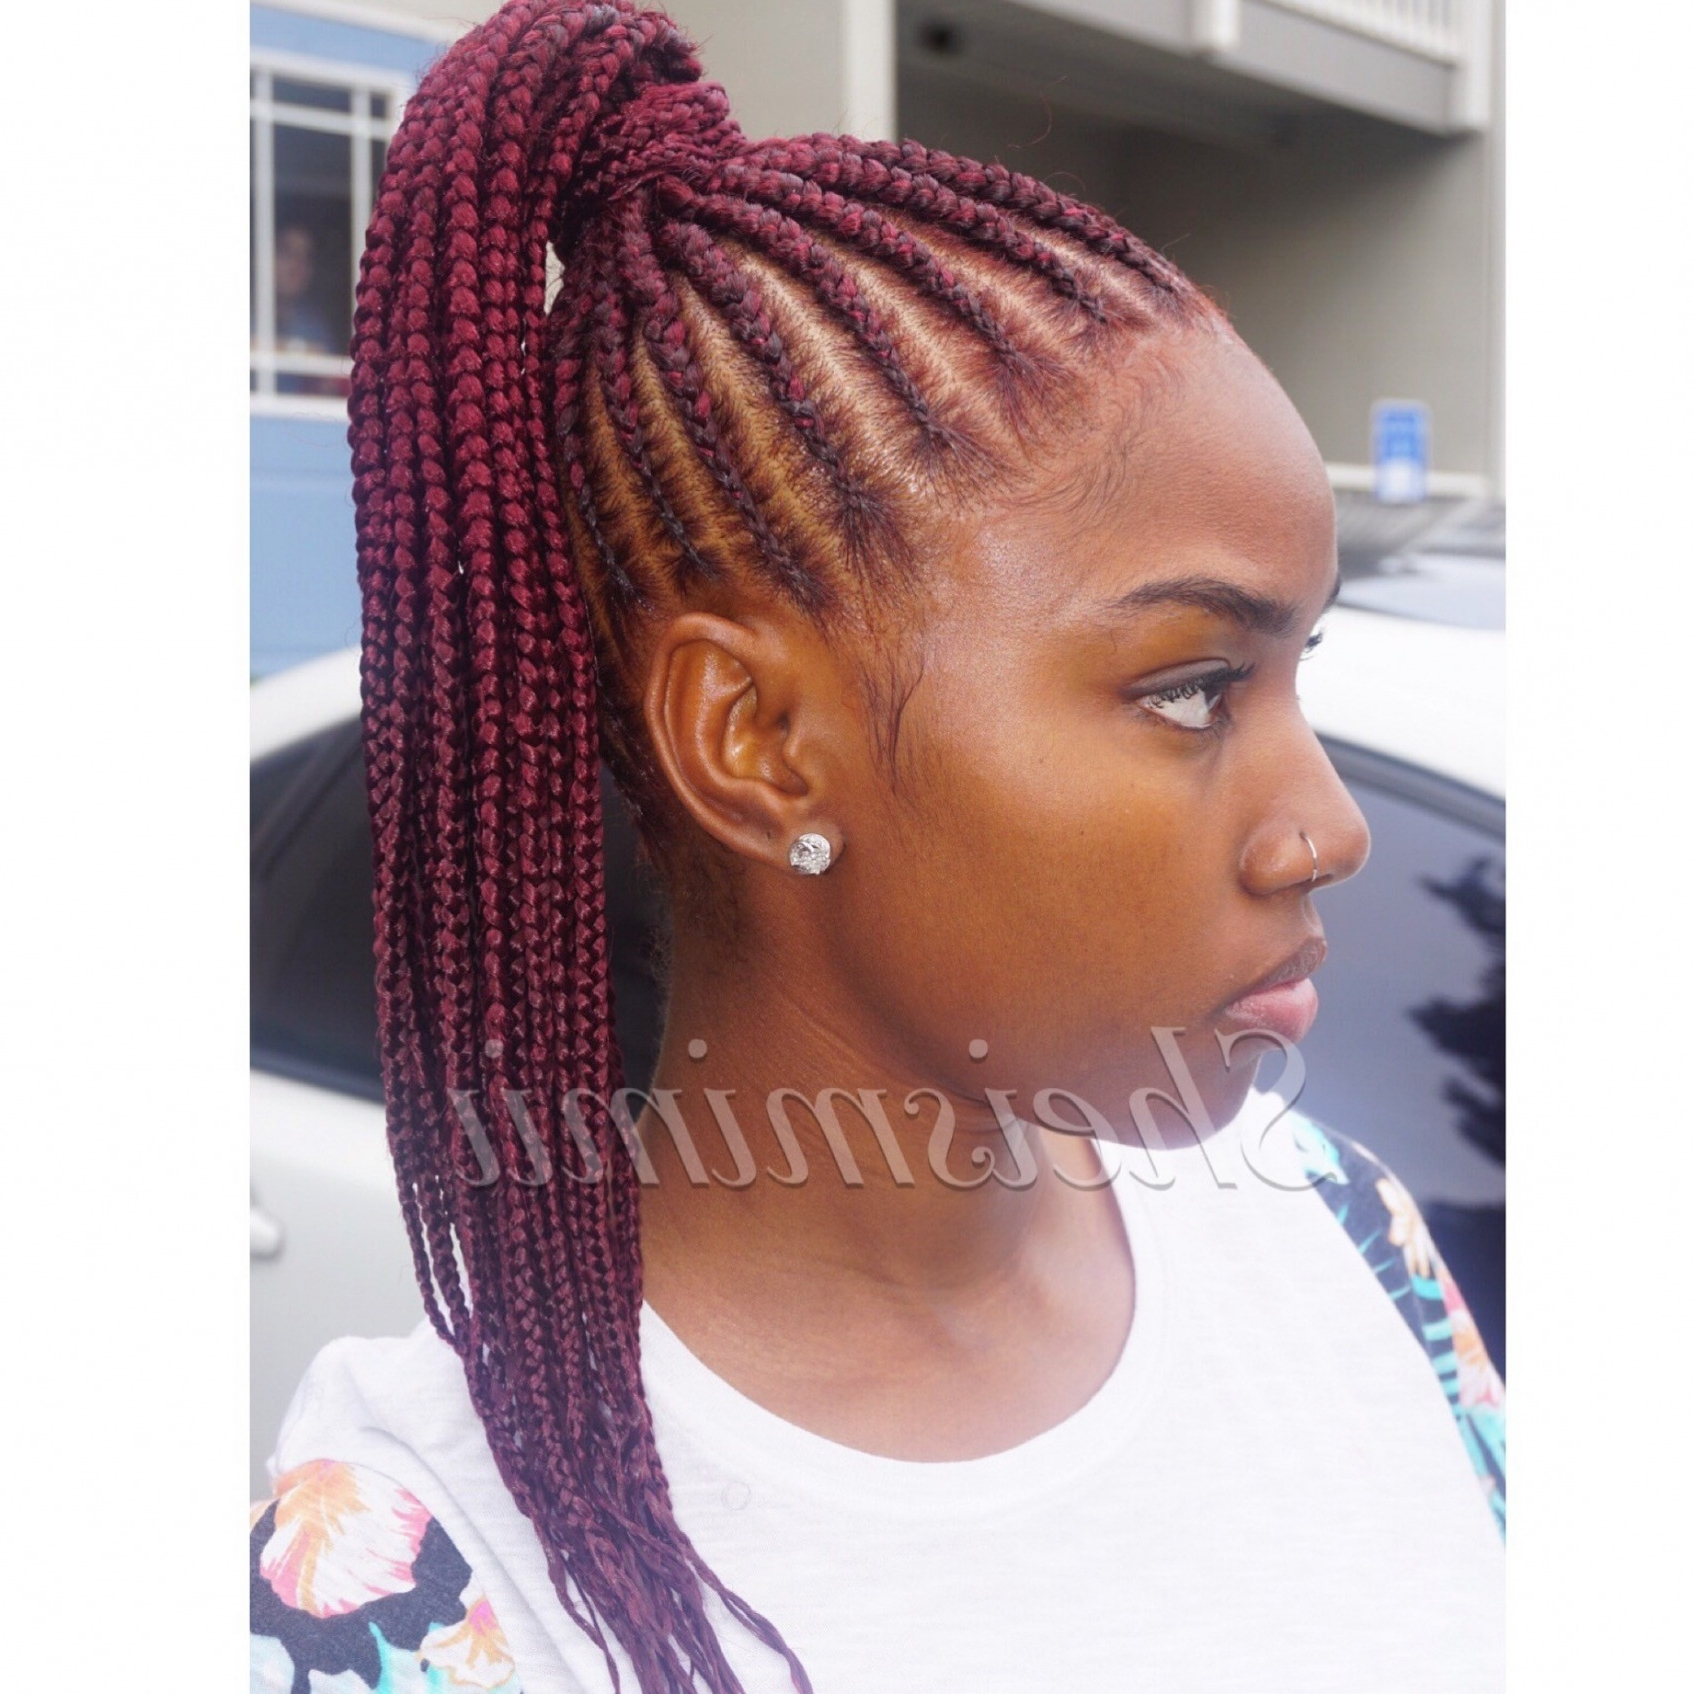 Unique Braided Hairstyles Ponytail Fresh Feed In Braids Up Into A Inside Well Known Braided Hairstyles With Ponytail (View 15 of 15)